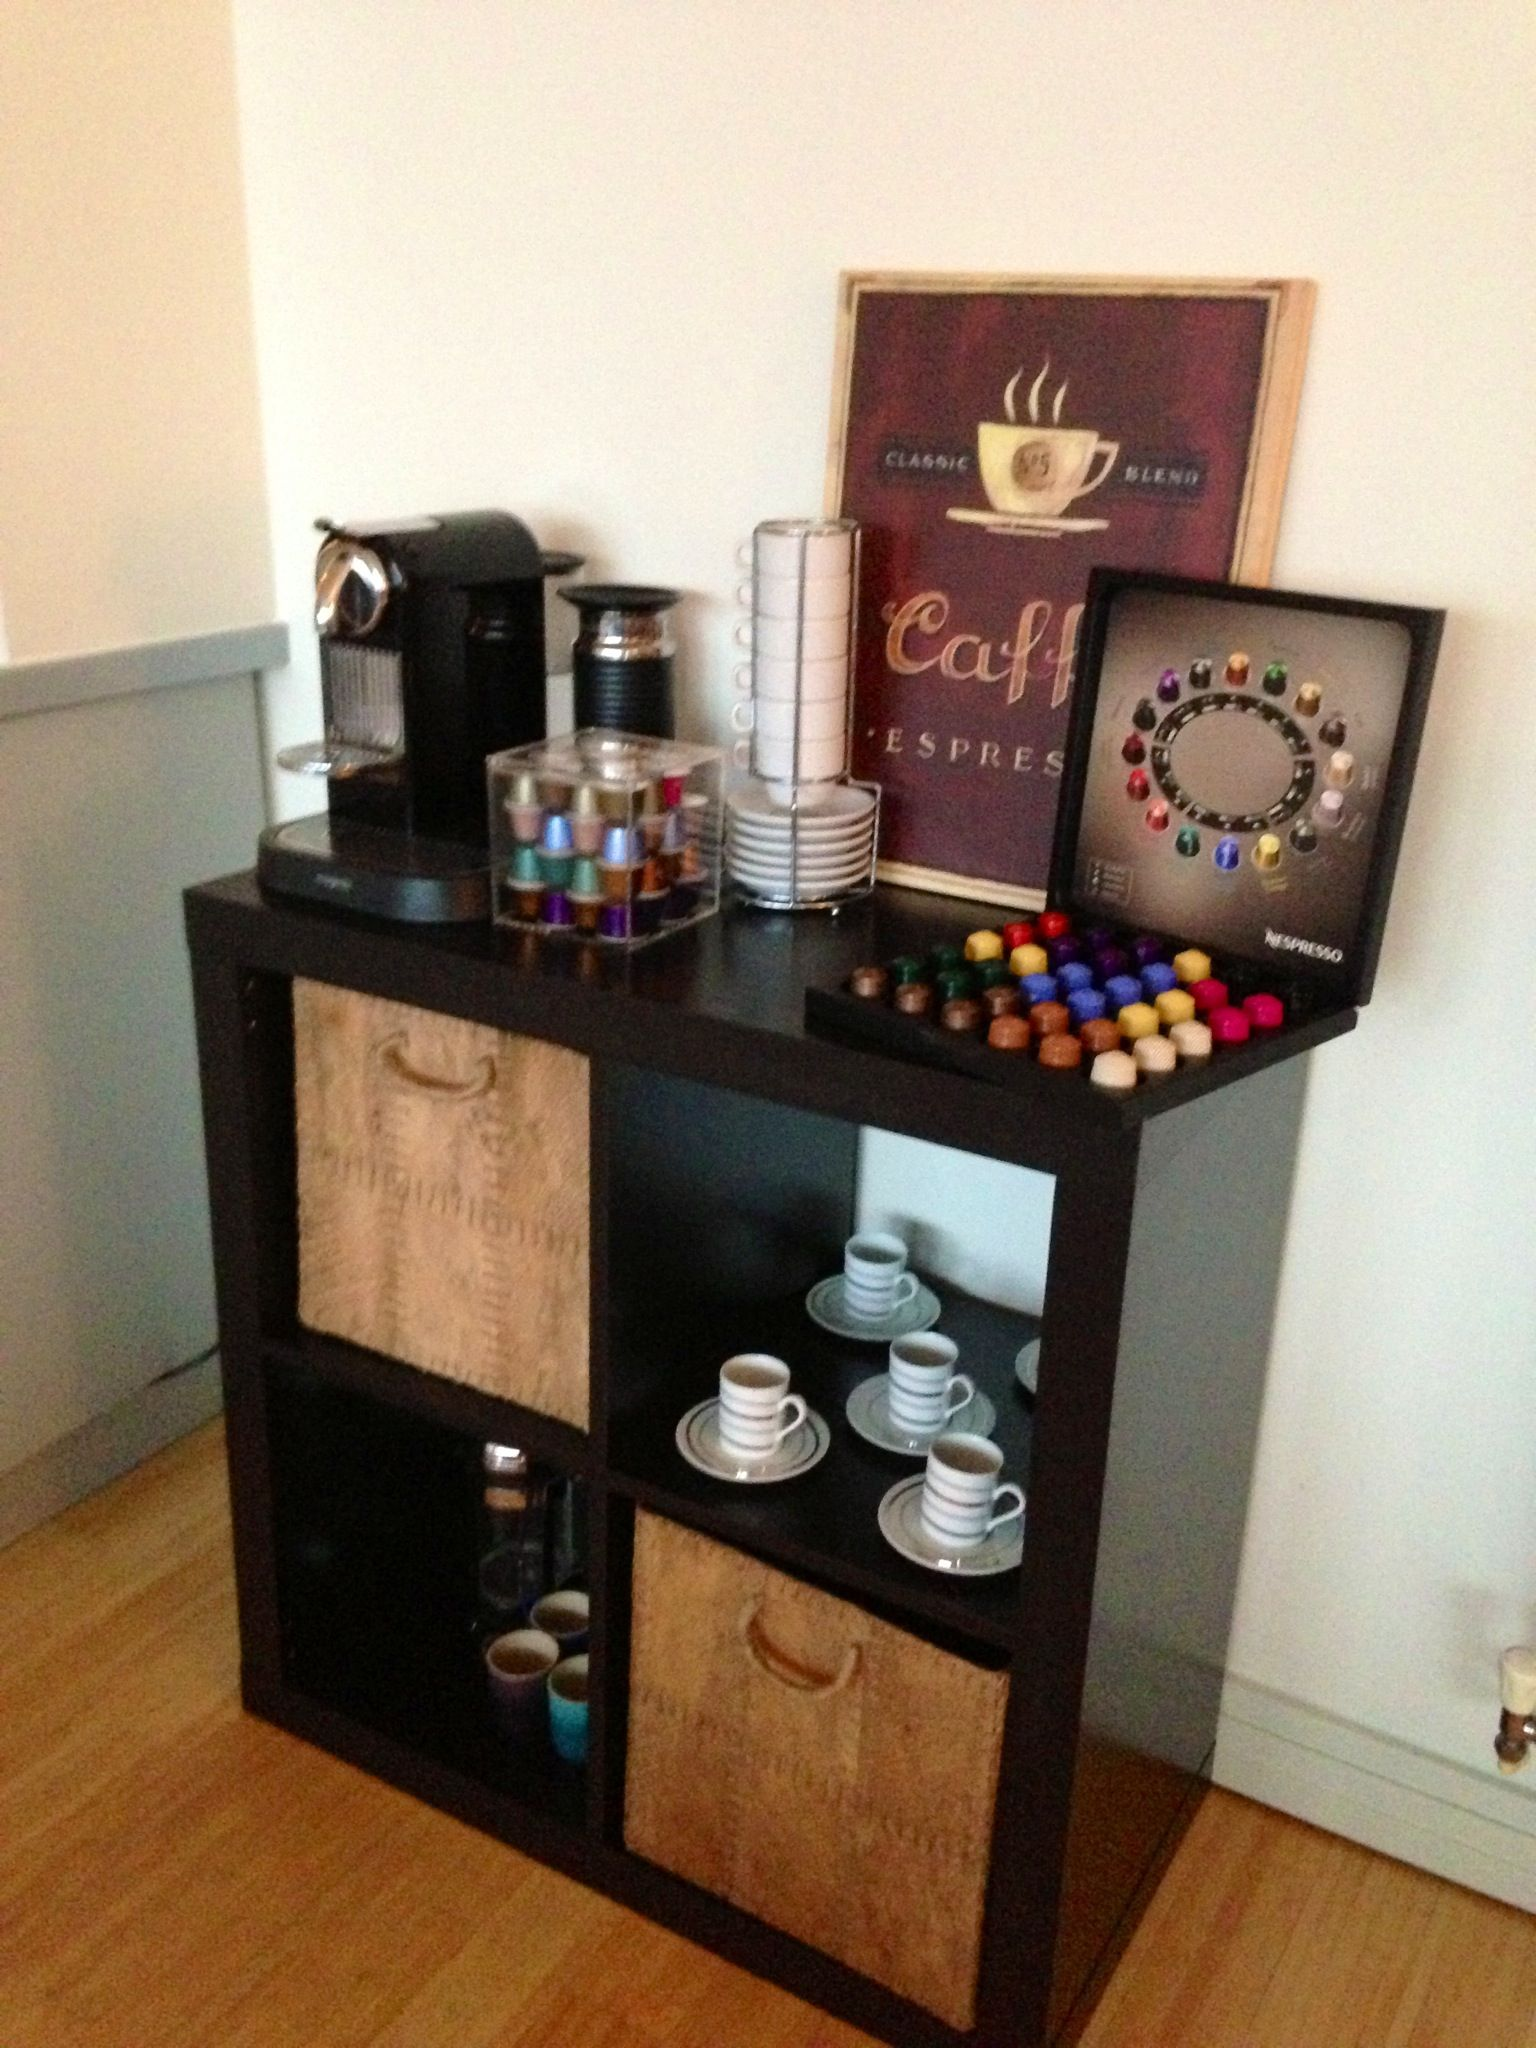 My Newest How To Make Ikea Look Expensive Project Coffee Bar